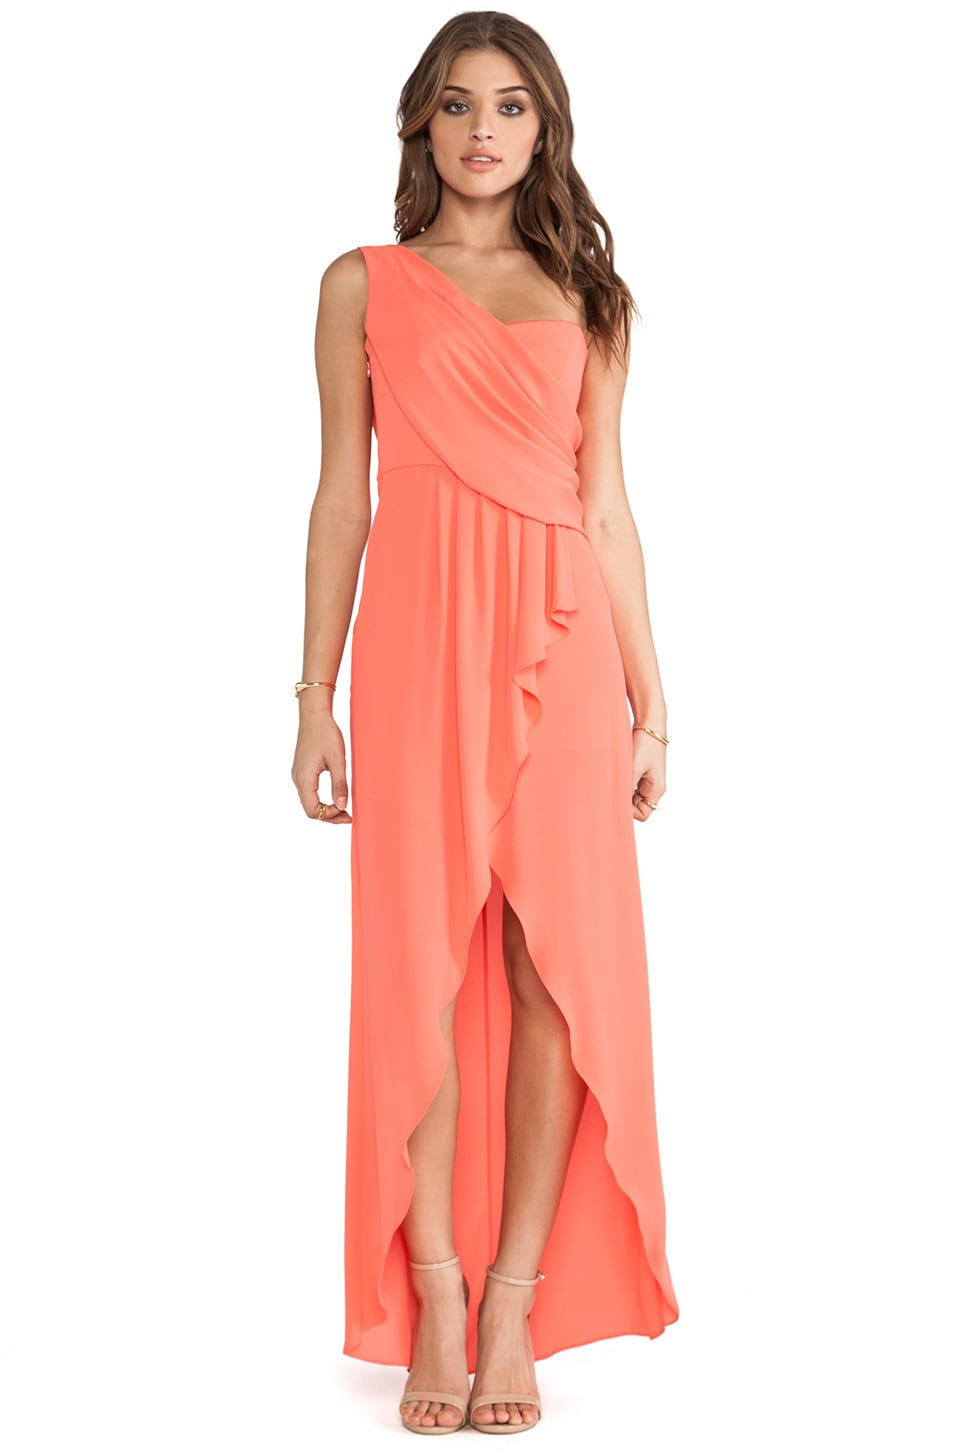 BCBGMAXAZRIA Kailo Maxi Dress in Ambrosia